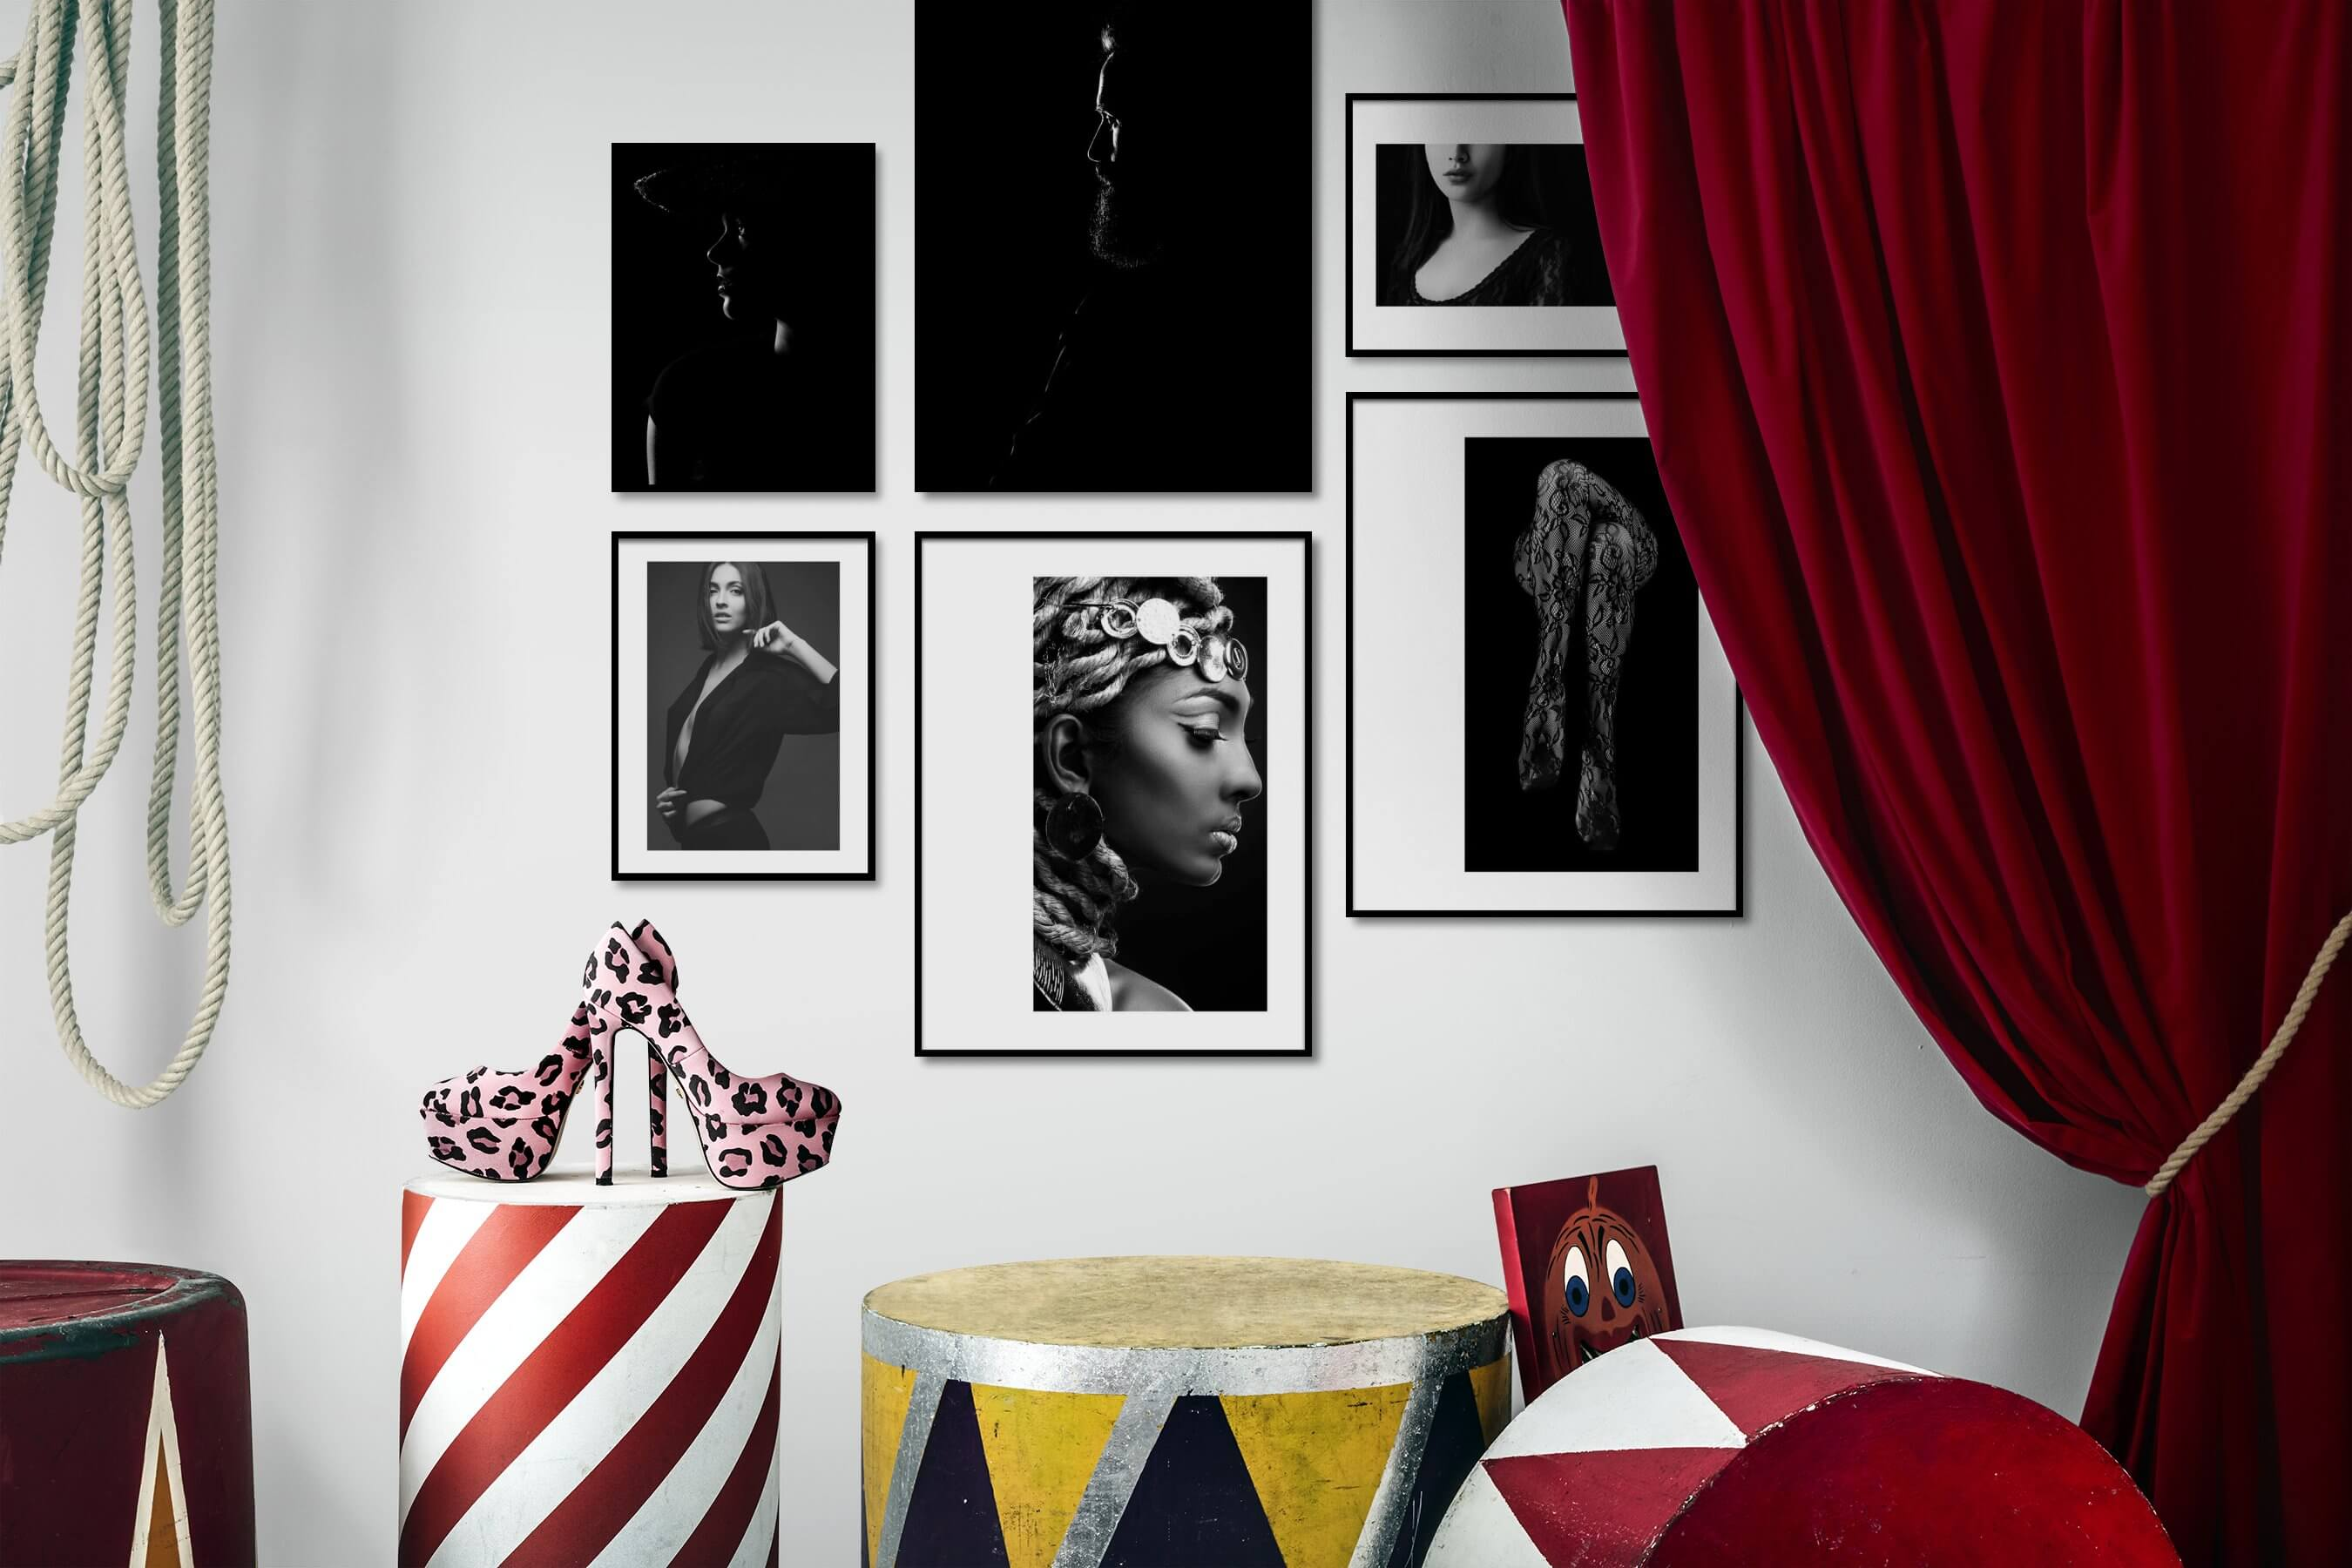 Gallery wall idea with six framed pictures arranged on a wall depicting Fashion & Beauty, Black & White, Dark Tones, For the Minimalist, and For the Moderate